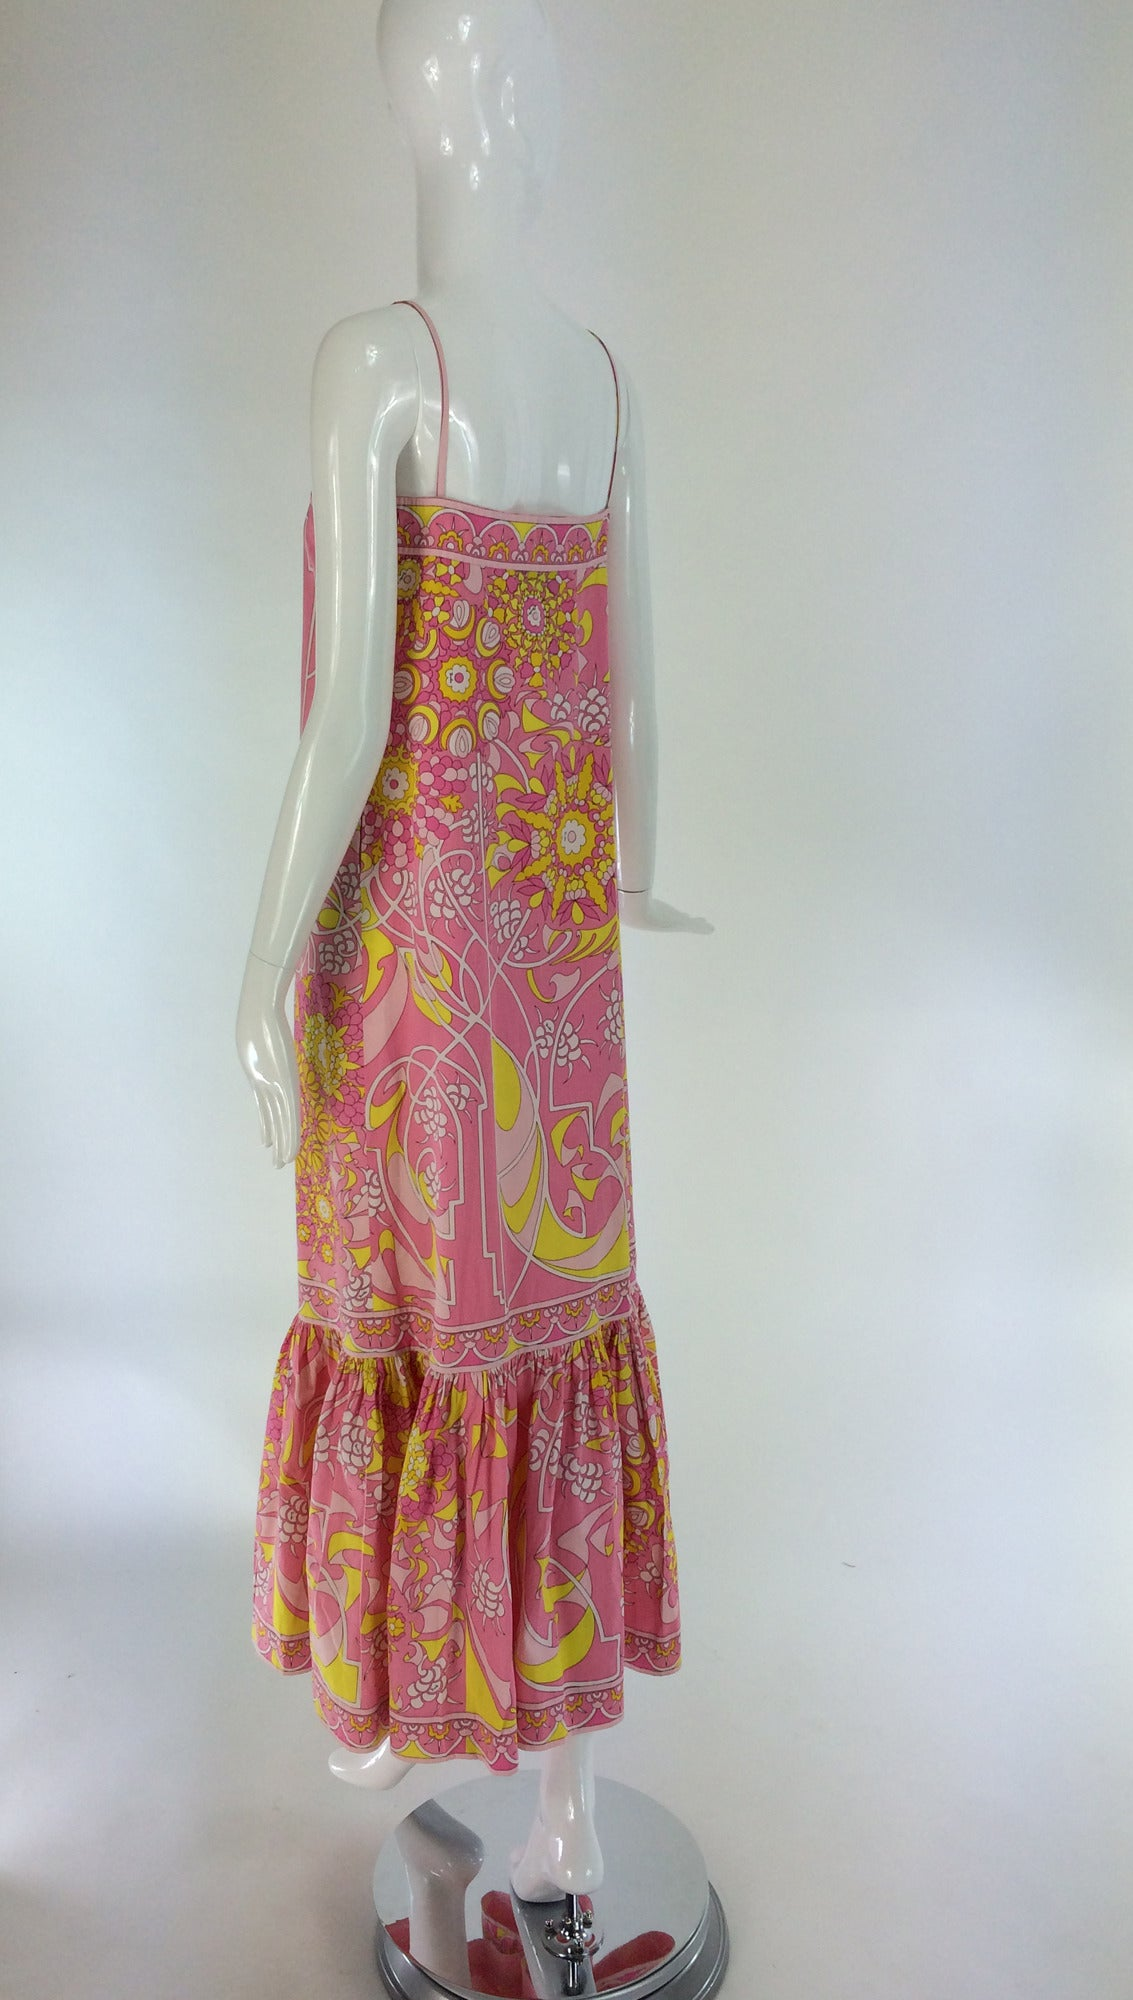 Emilio Pucci printed cotton maxi dress out of the ordinary design 1960s 8